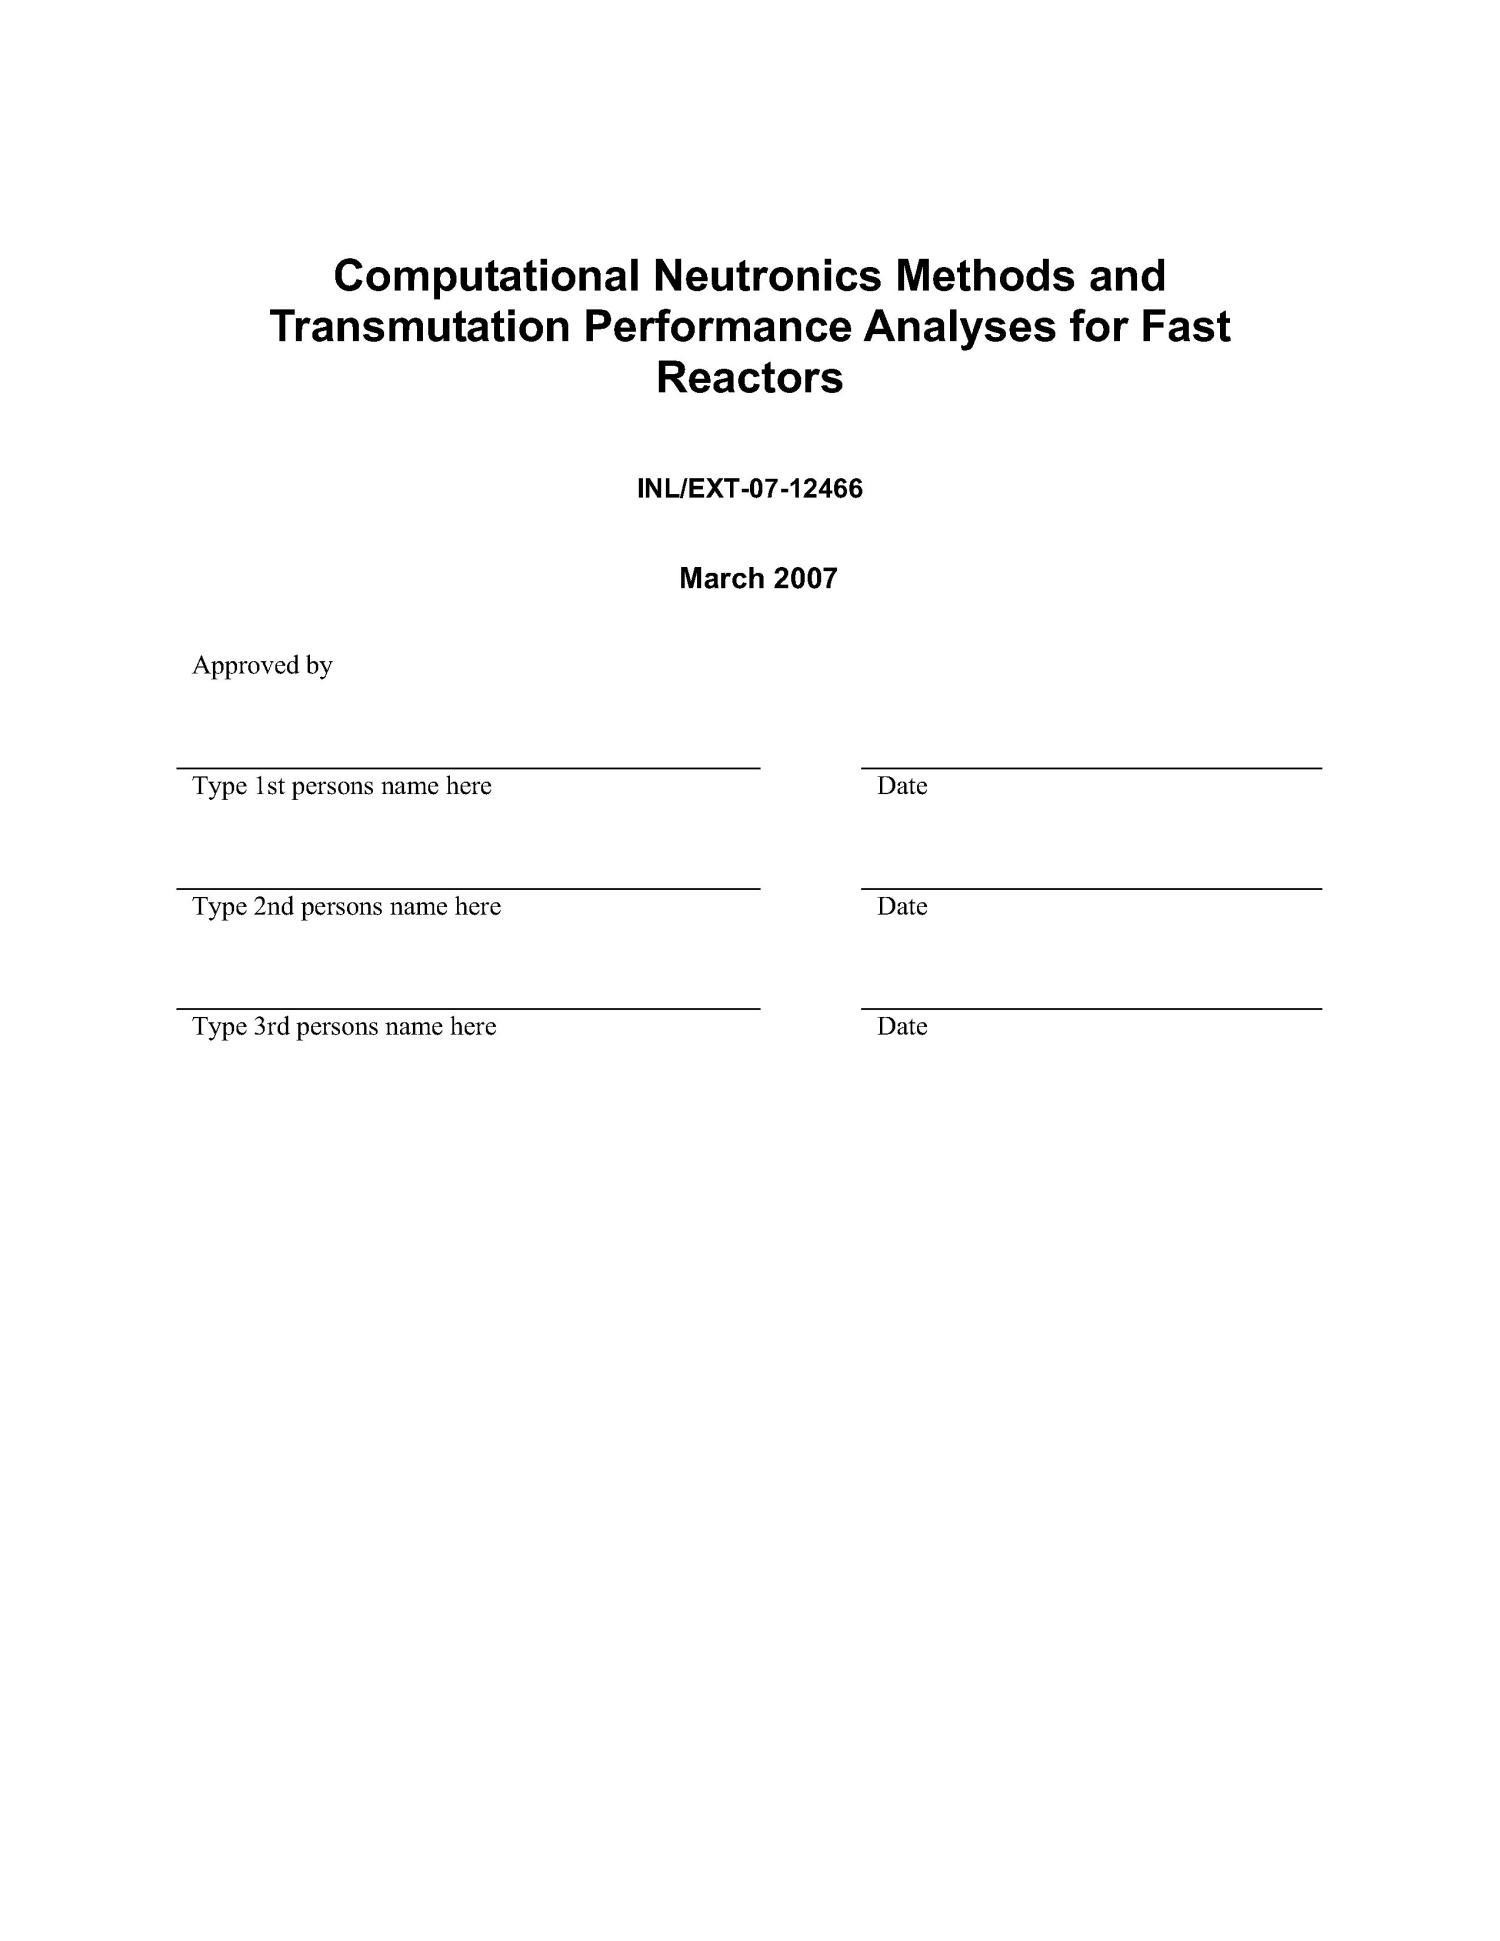 Computational Neutronics Methods and Transmutation Performance Analyses for Fast Reactors                                                                                                      [Sequence #]: 3 of 29